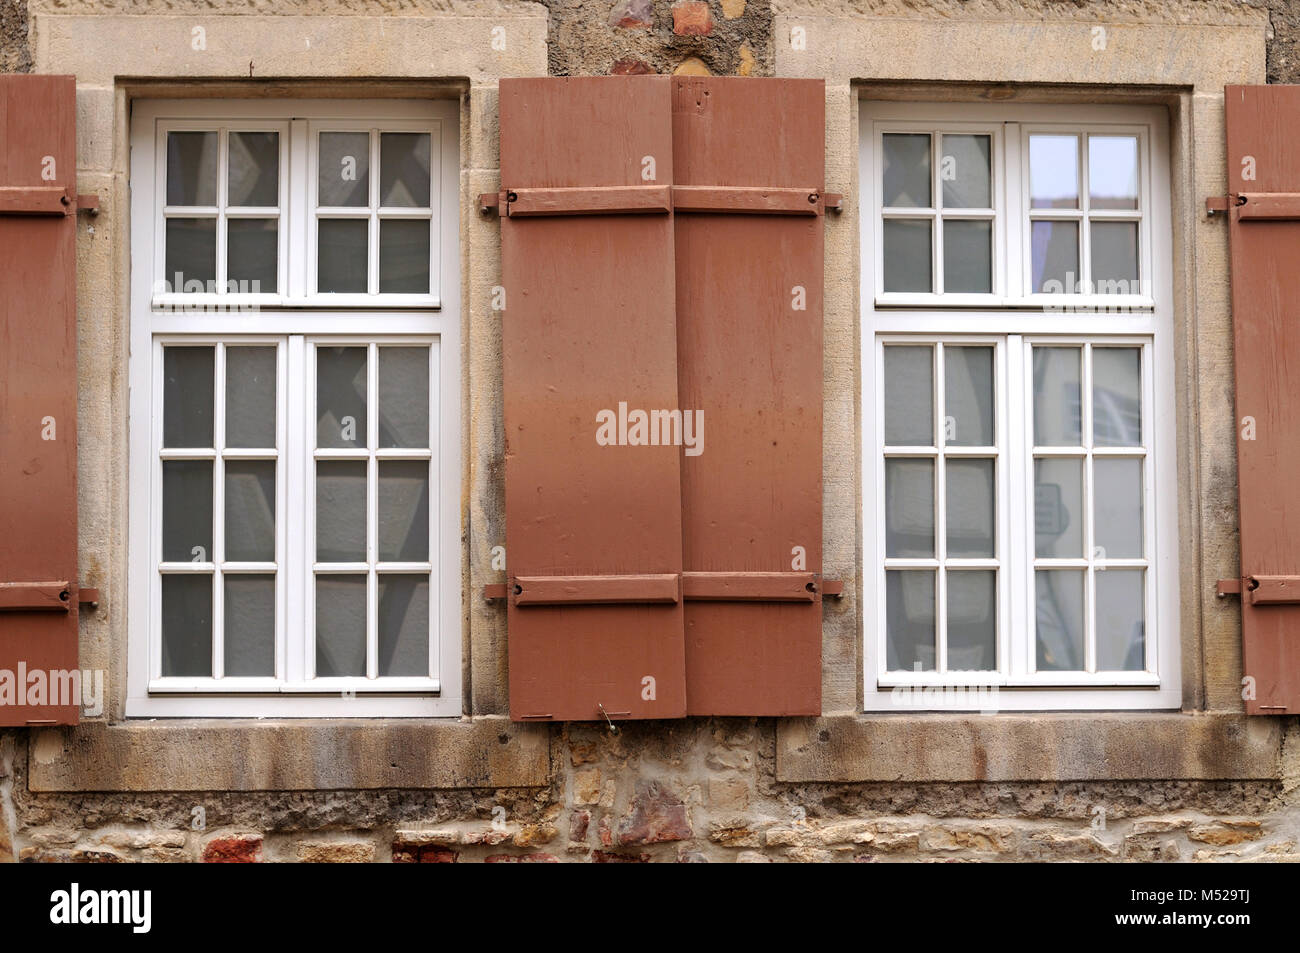 wooden lattice windows stock photos wooden lattice windows stock